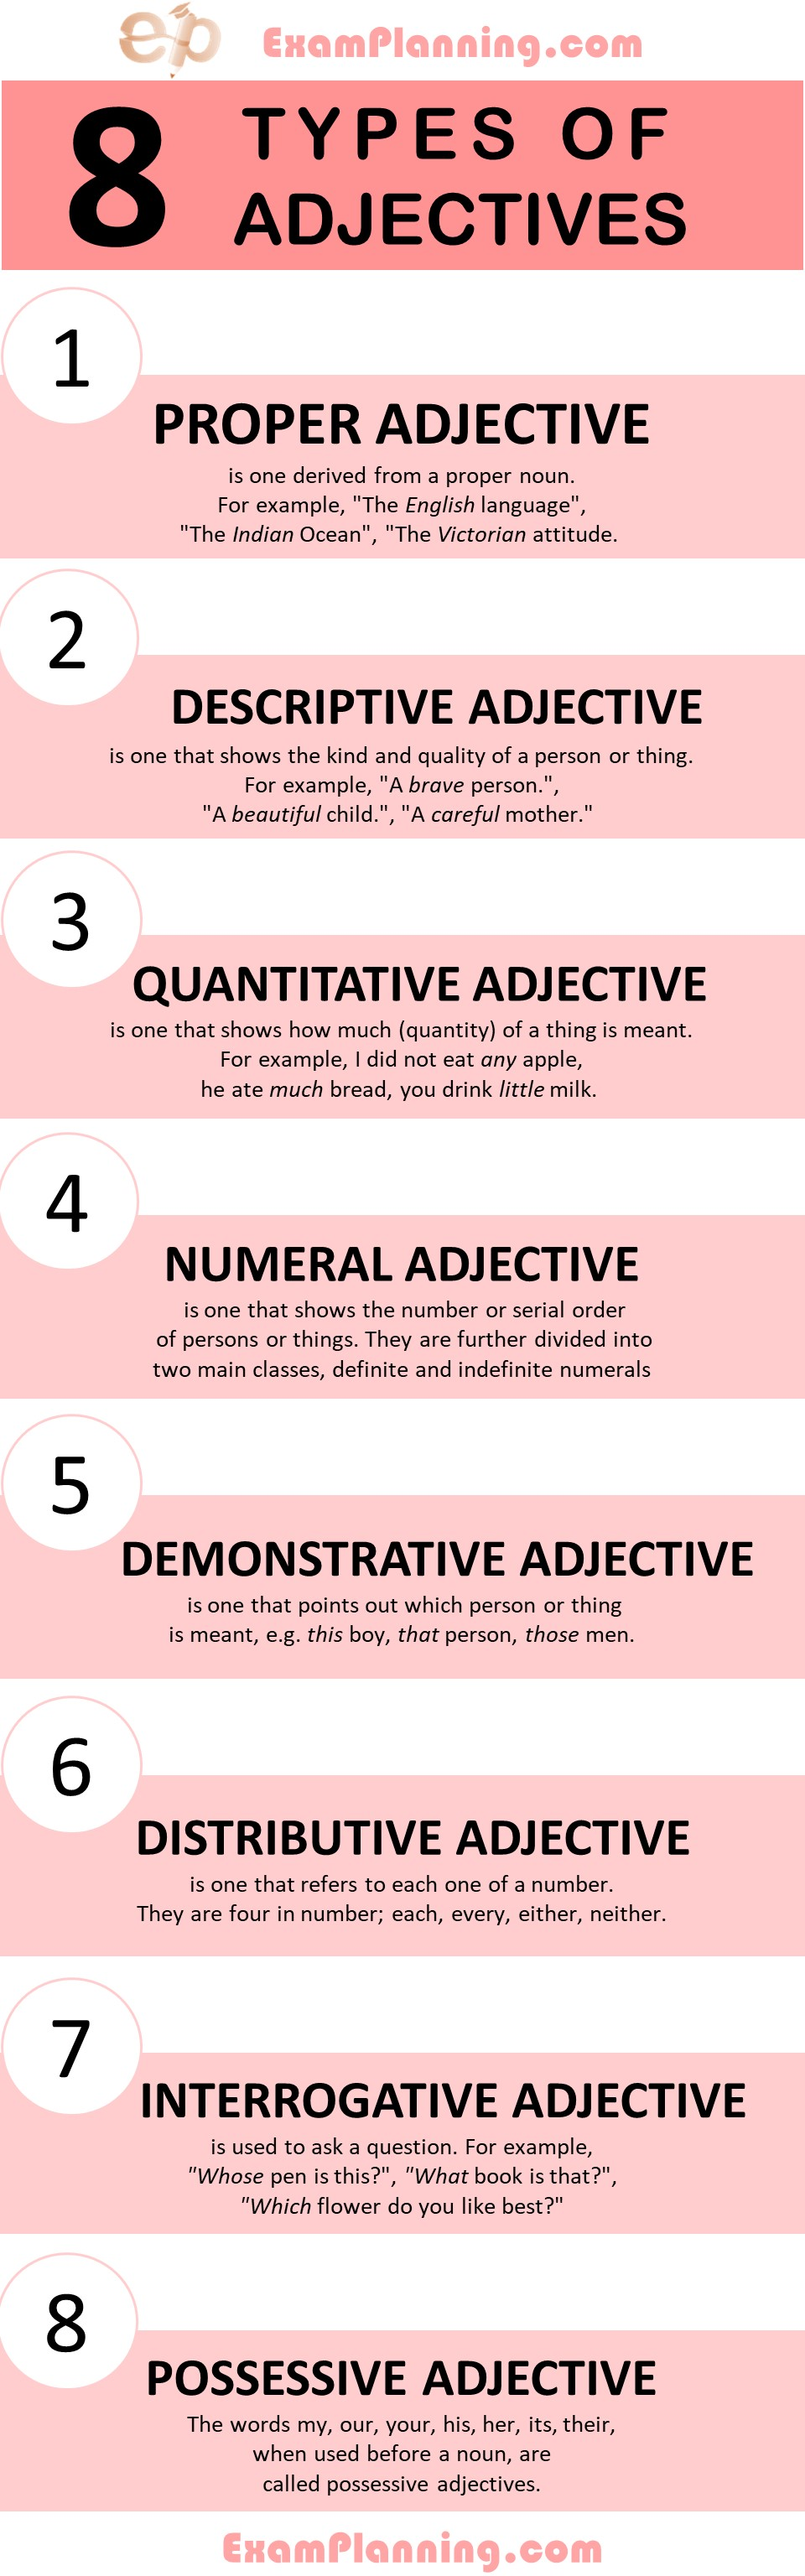 Learn 8 Types of Adjectives with Examples - ExamPlanning % [ 3072 x 960 Pixel ]